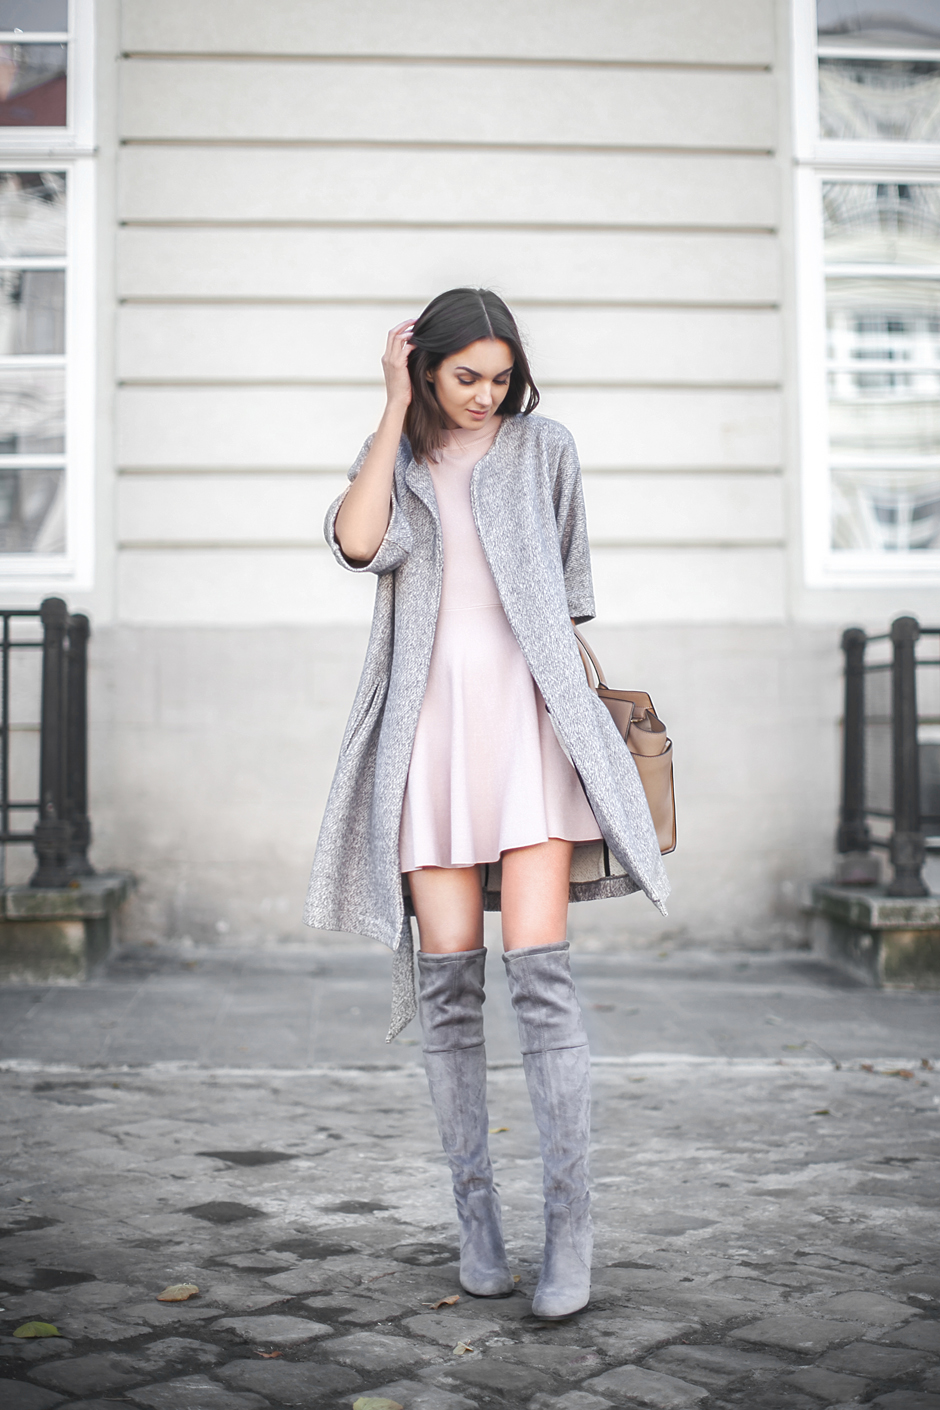 fashion-look-outfit-overknee-boots-thigh-high